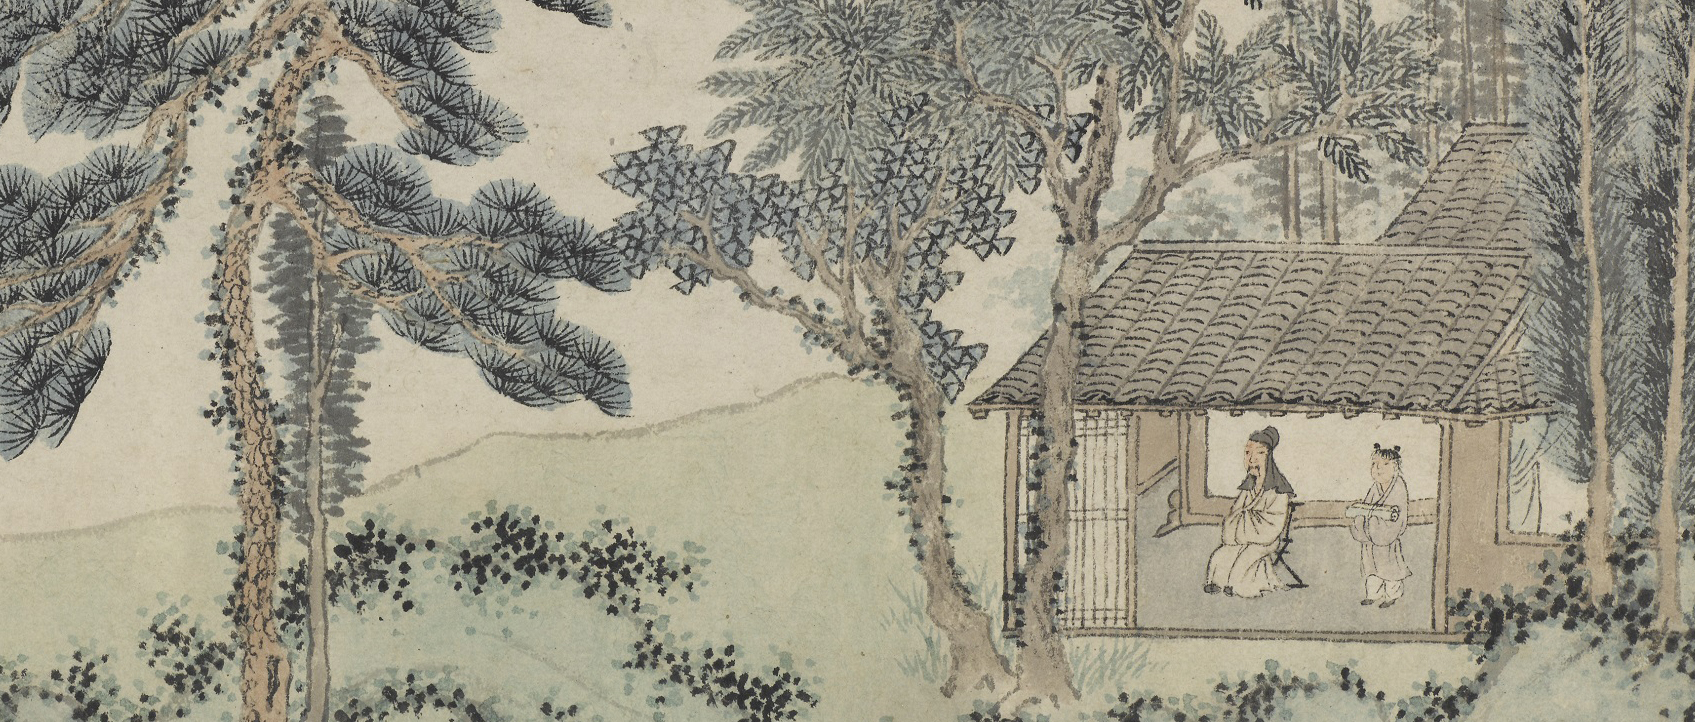 detail of illustration of person in a building under trees